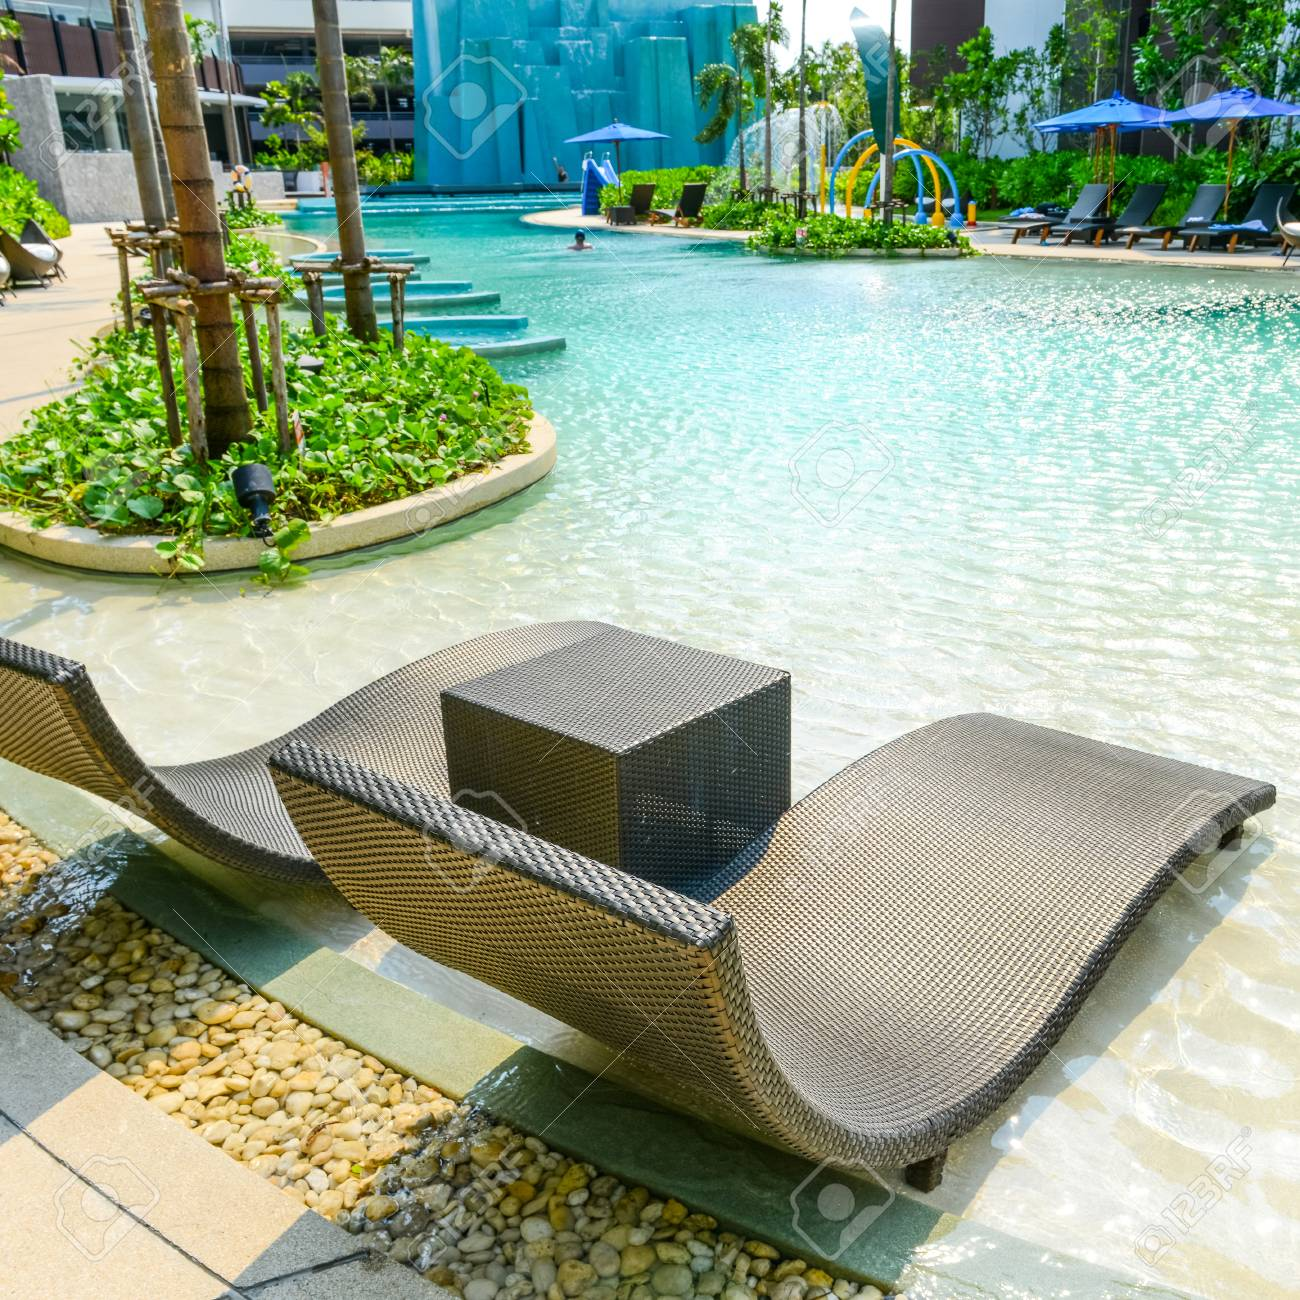 Beach chairs in luxury swimming pool at tropical hotel resort,..